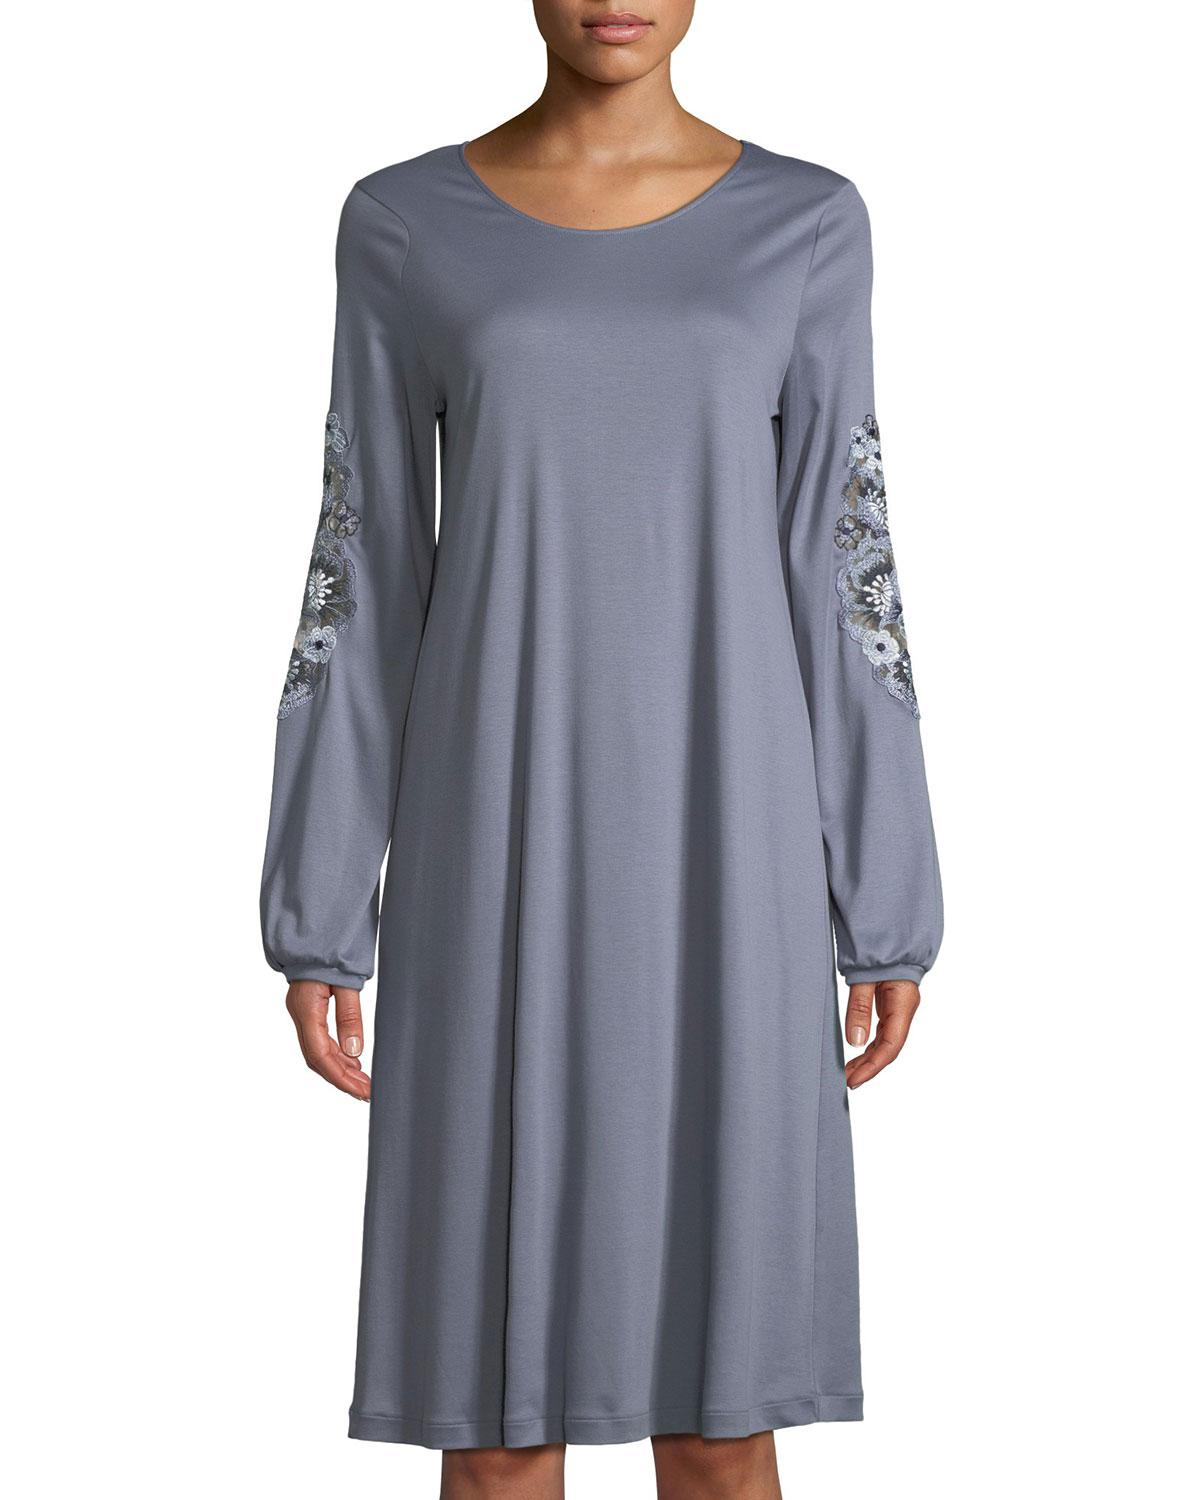 6f8ad4c4f9 Lyst - Hanro Jana Floral-embroidery Short Nightgown in Blue